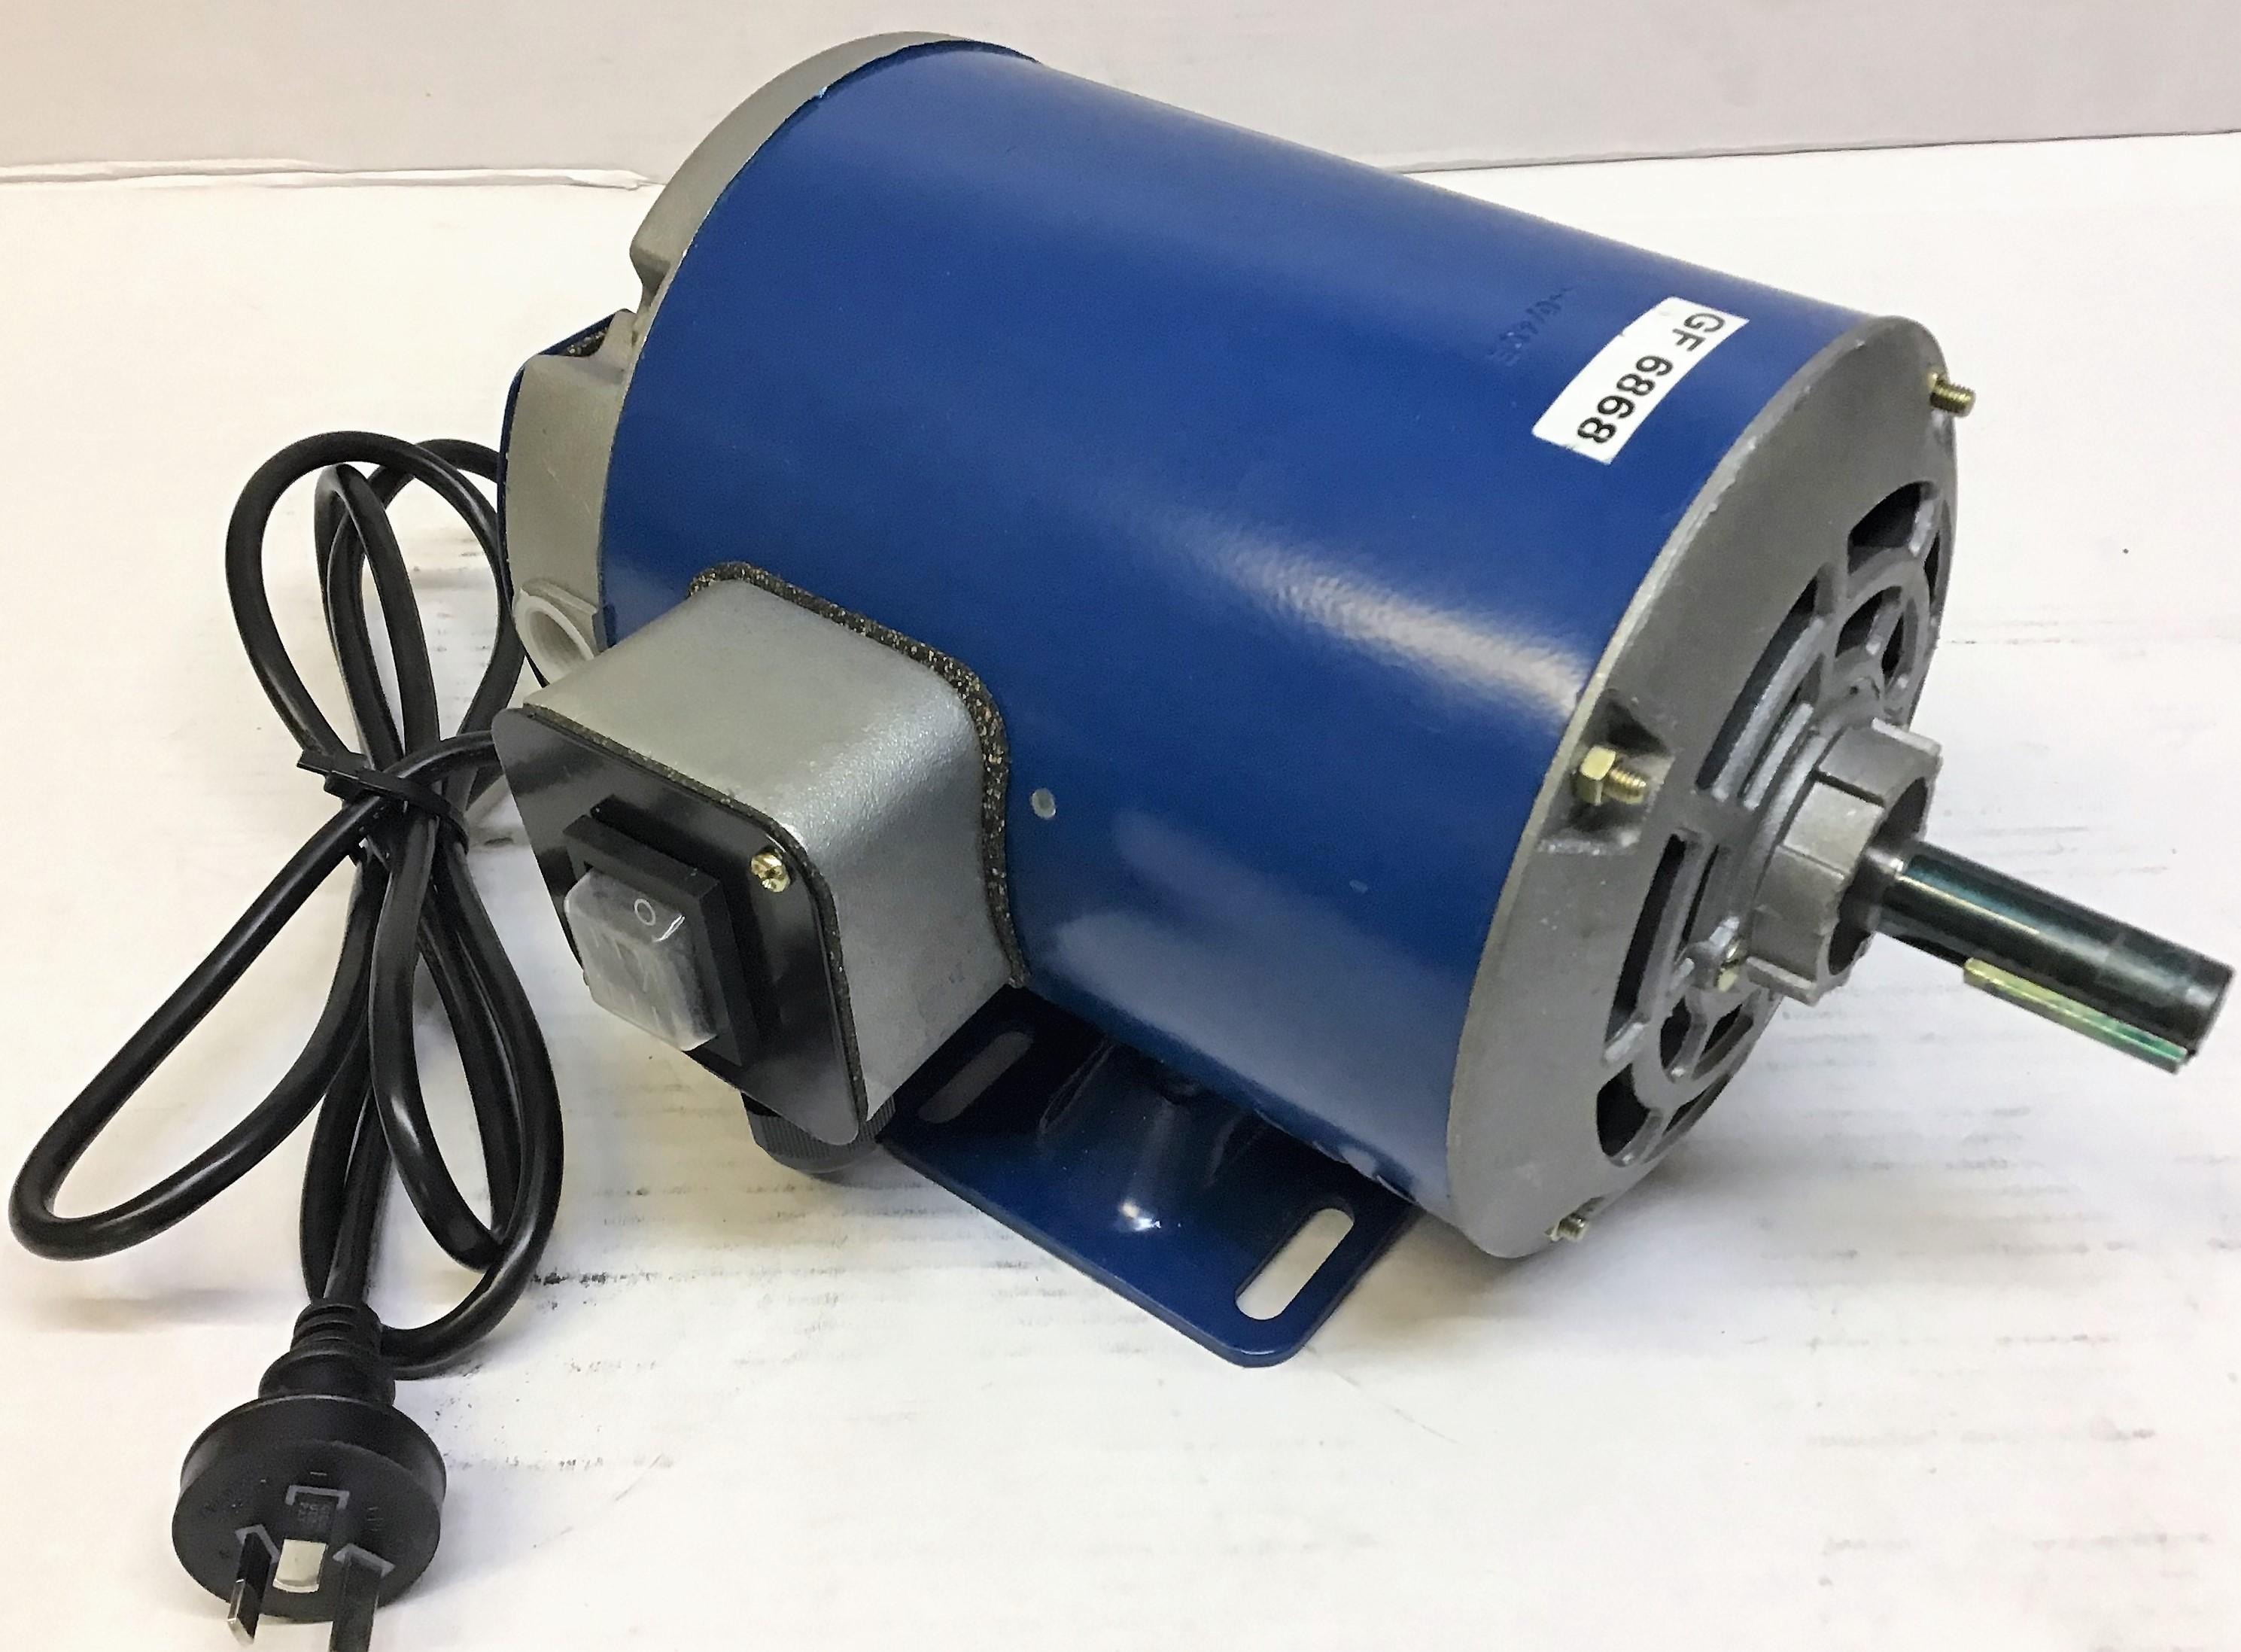 Crompton Greaves 0.25kW 4p B3 foot mount 240V cement mixer motor - switch & lead